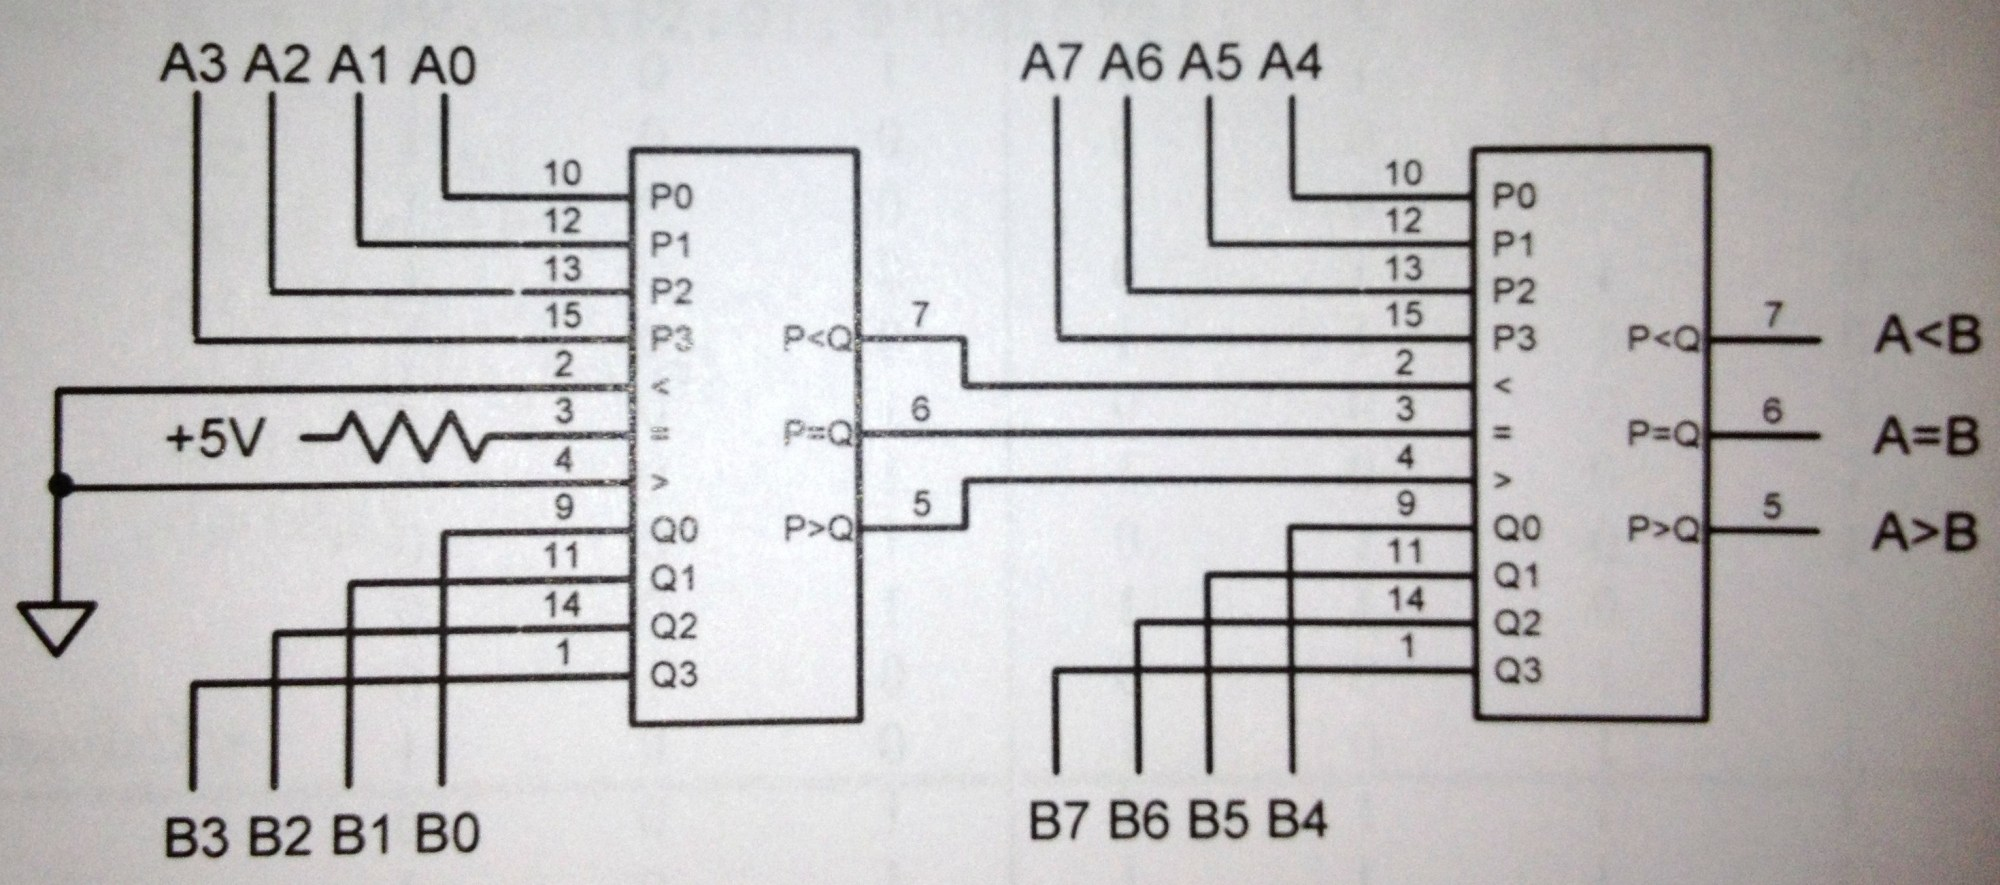 hight resolution of block diagram of 4 bit comparator